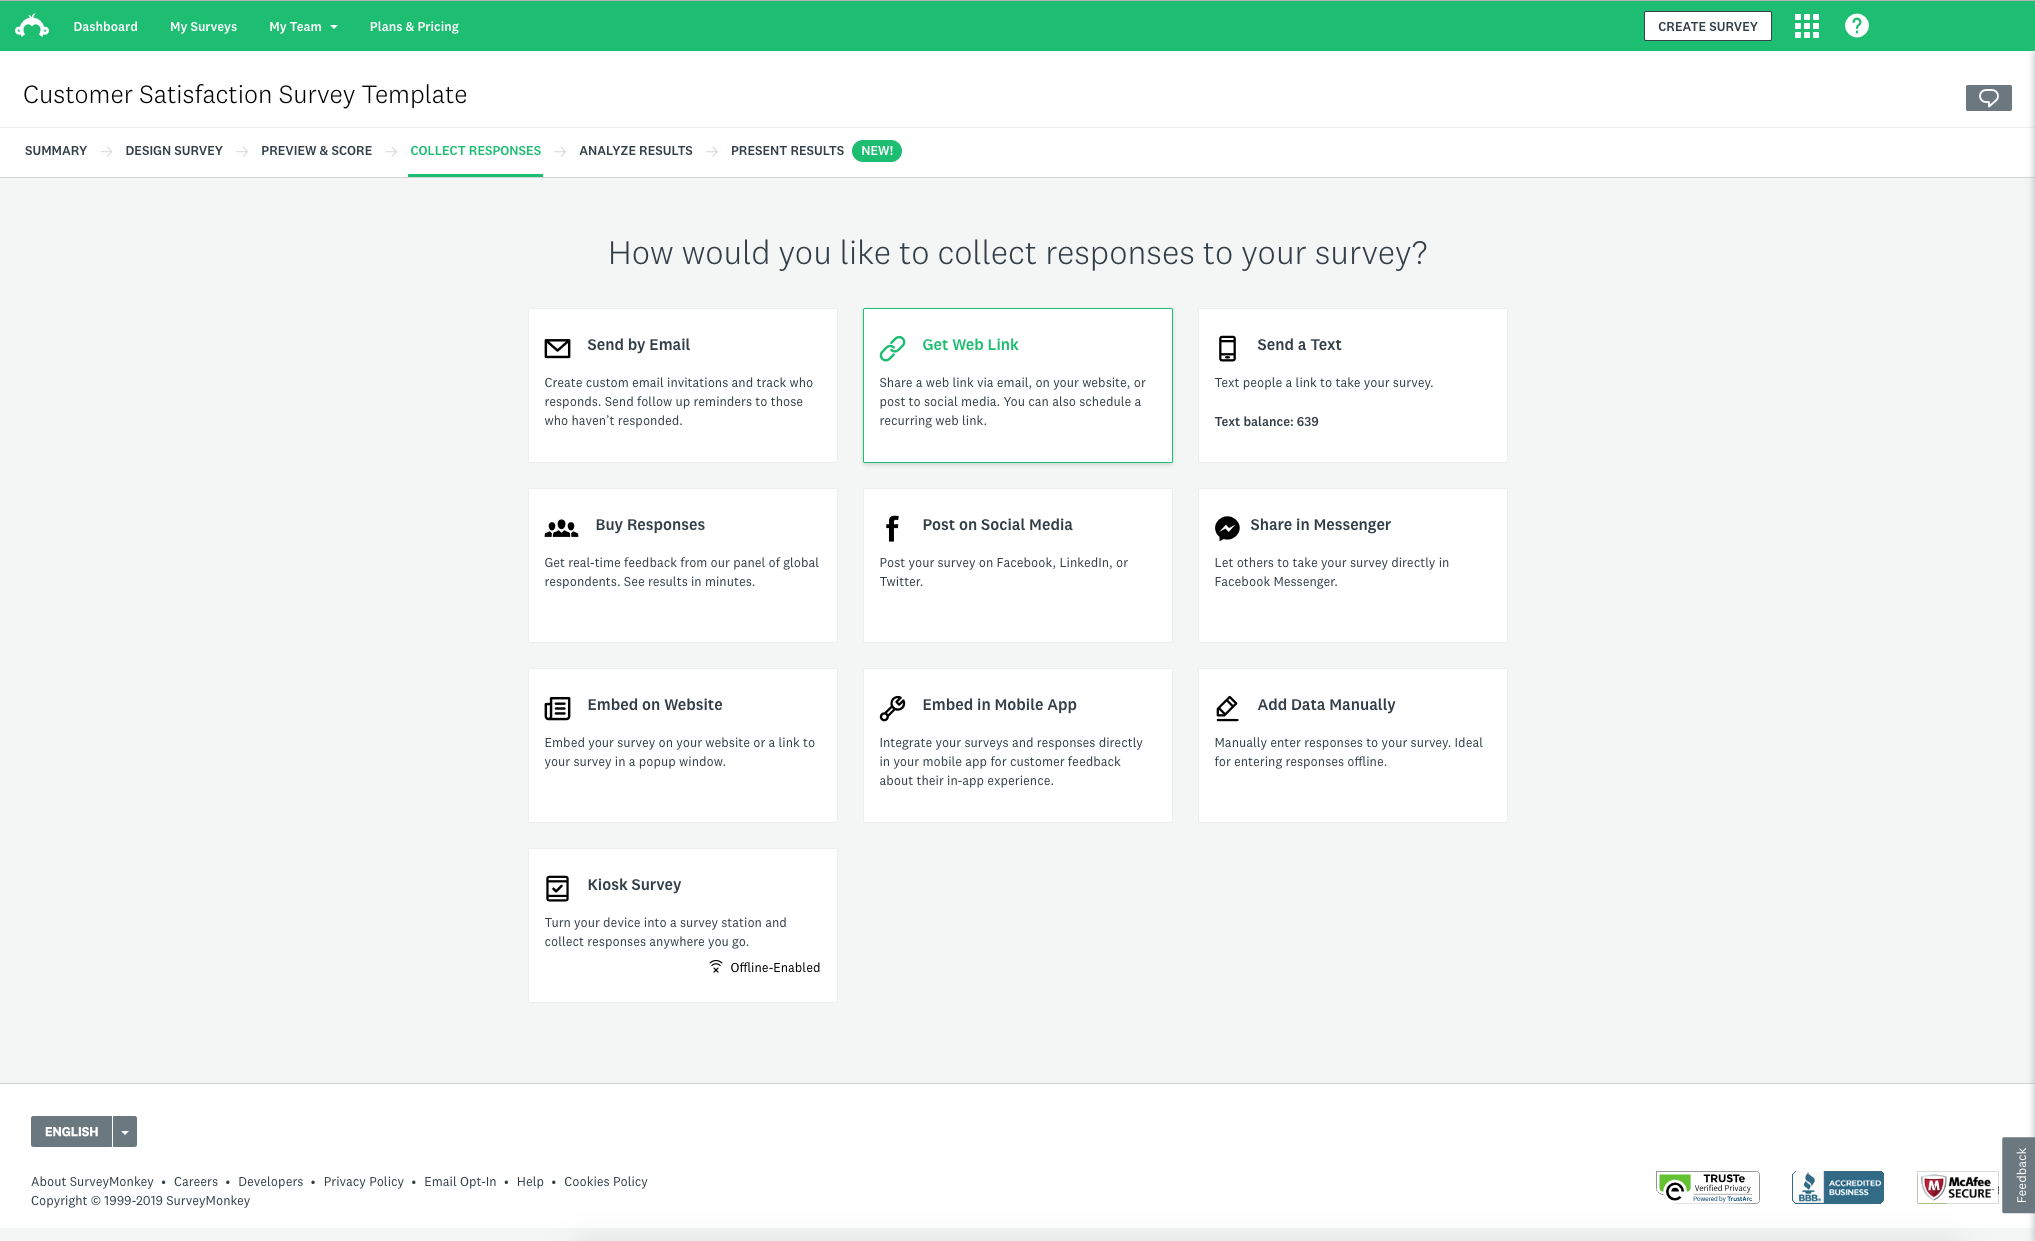 SurveyMonkey Demo - Screen-Shot-2019-03-14-at-1.55.29-PM.png